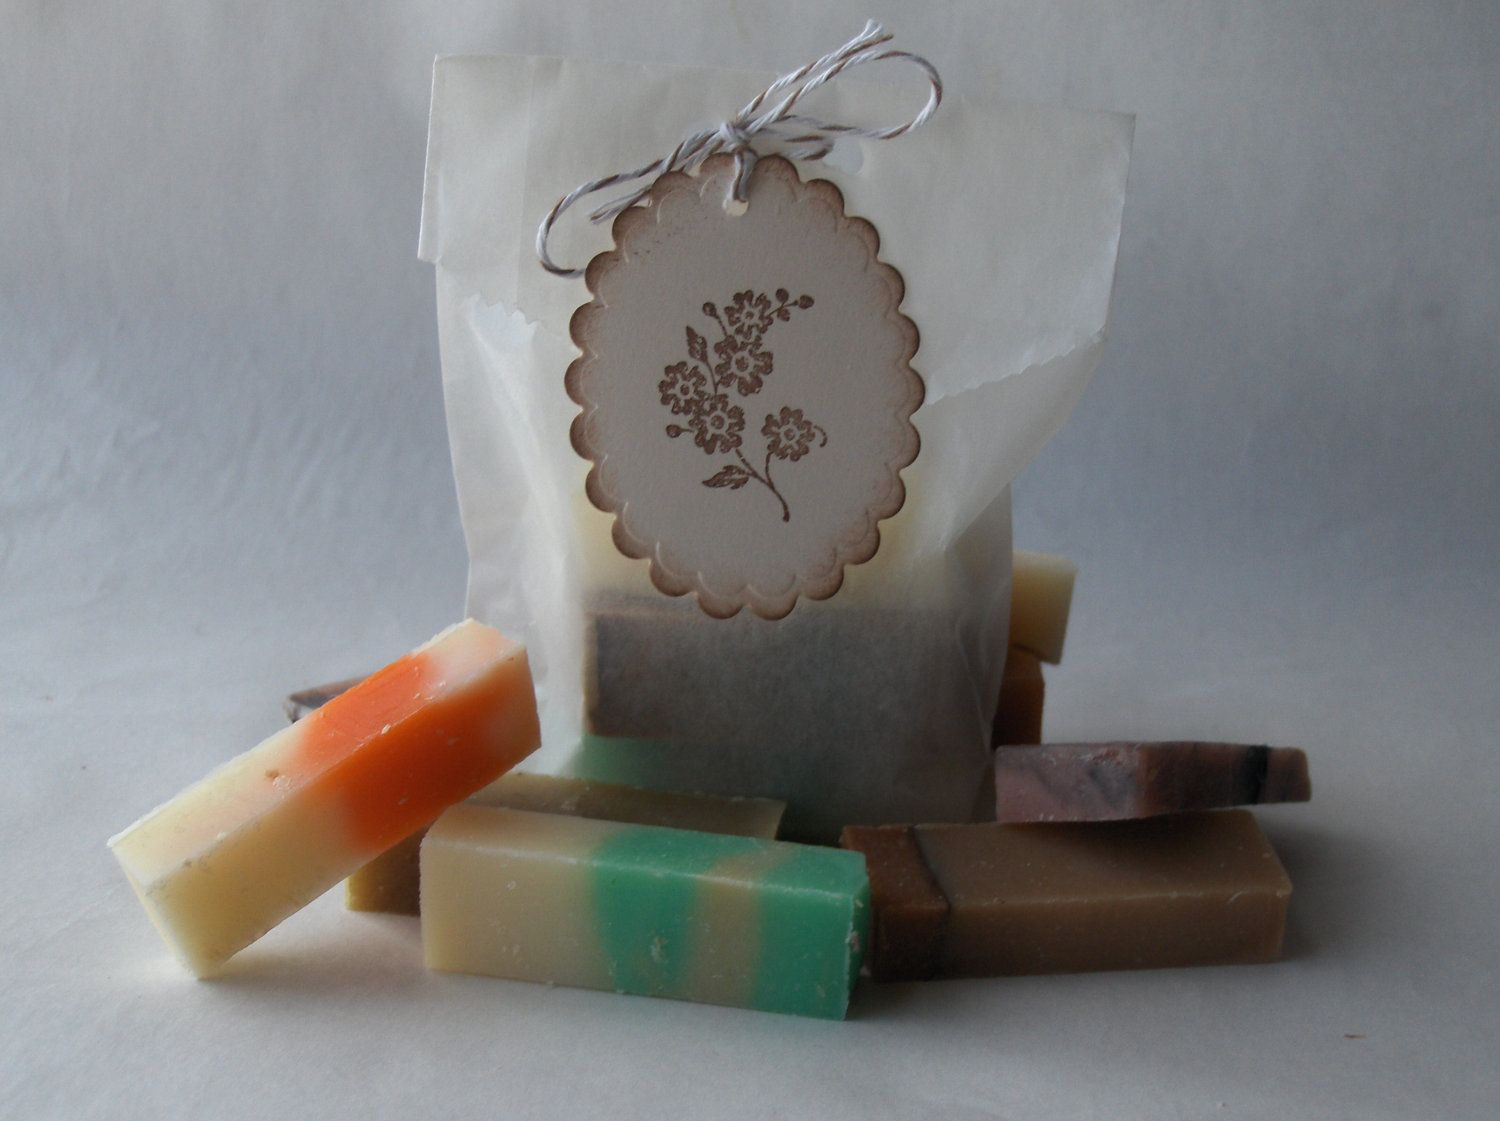 Vermont Made Artisan Soap Sampler All Natural Handcrafted